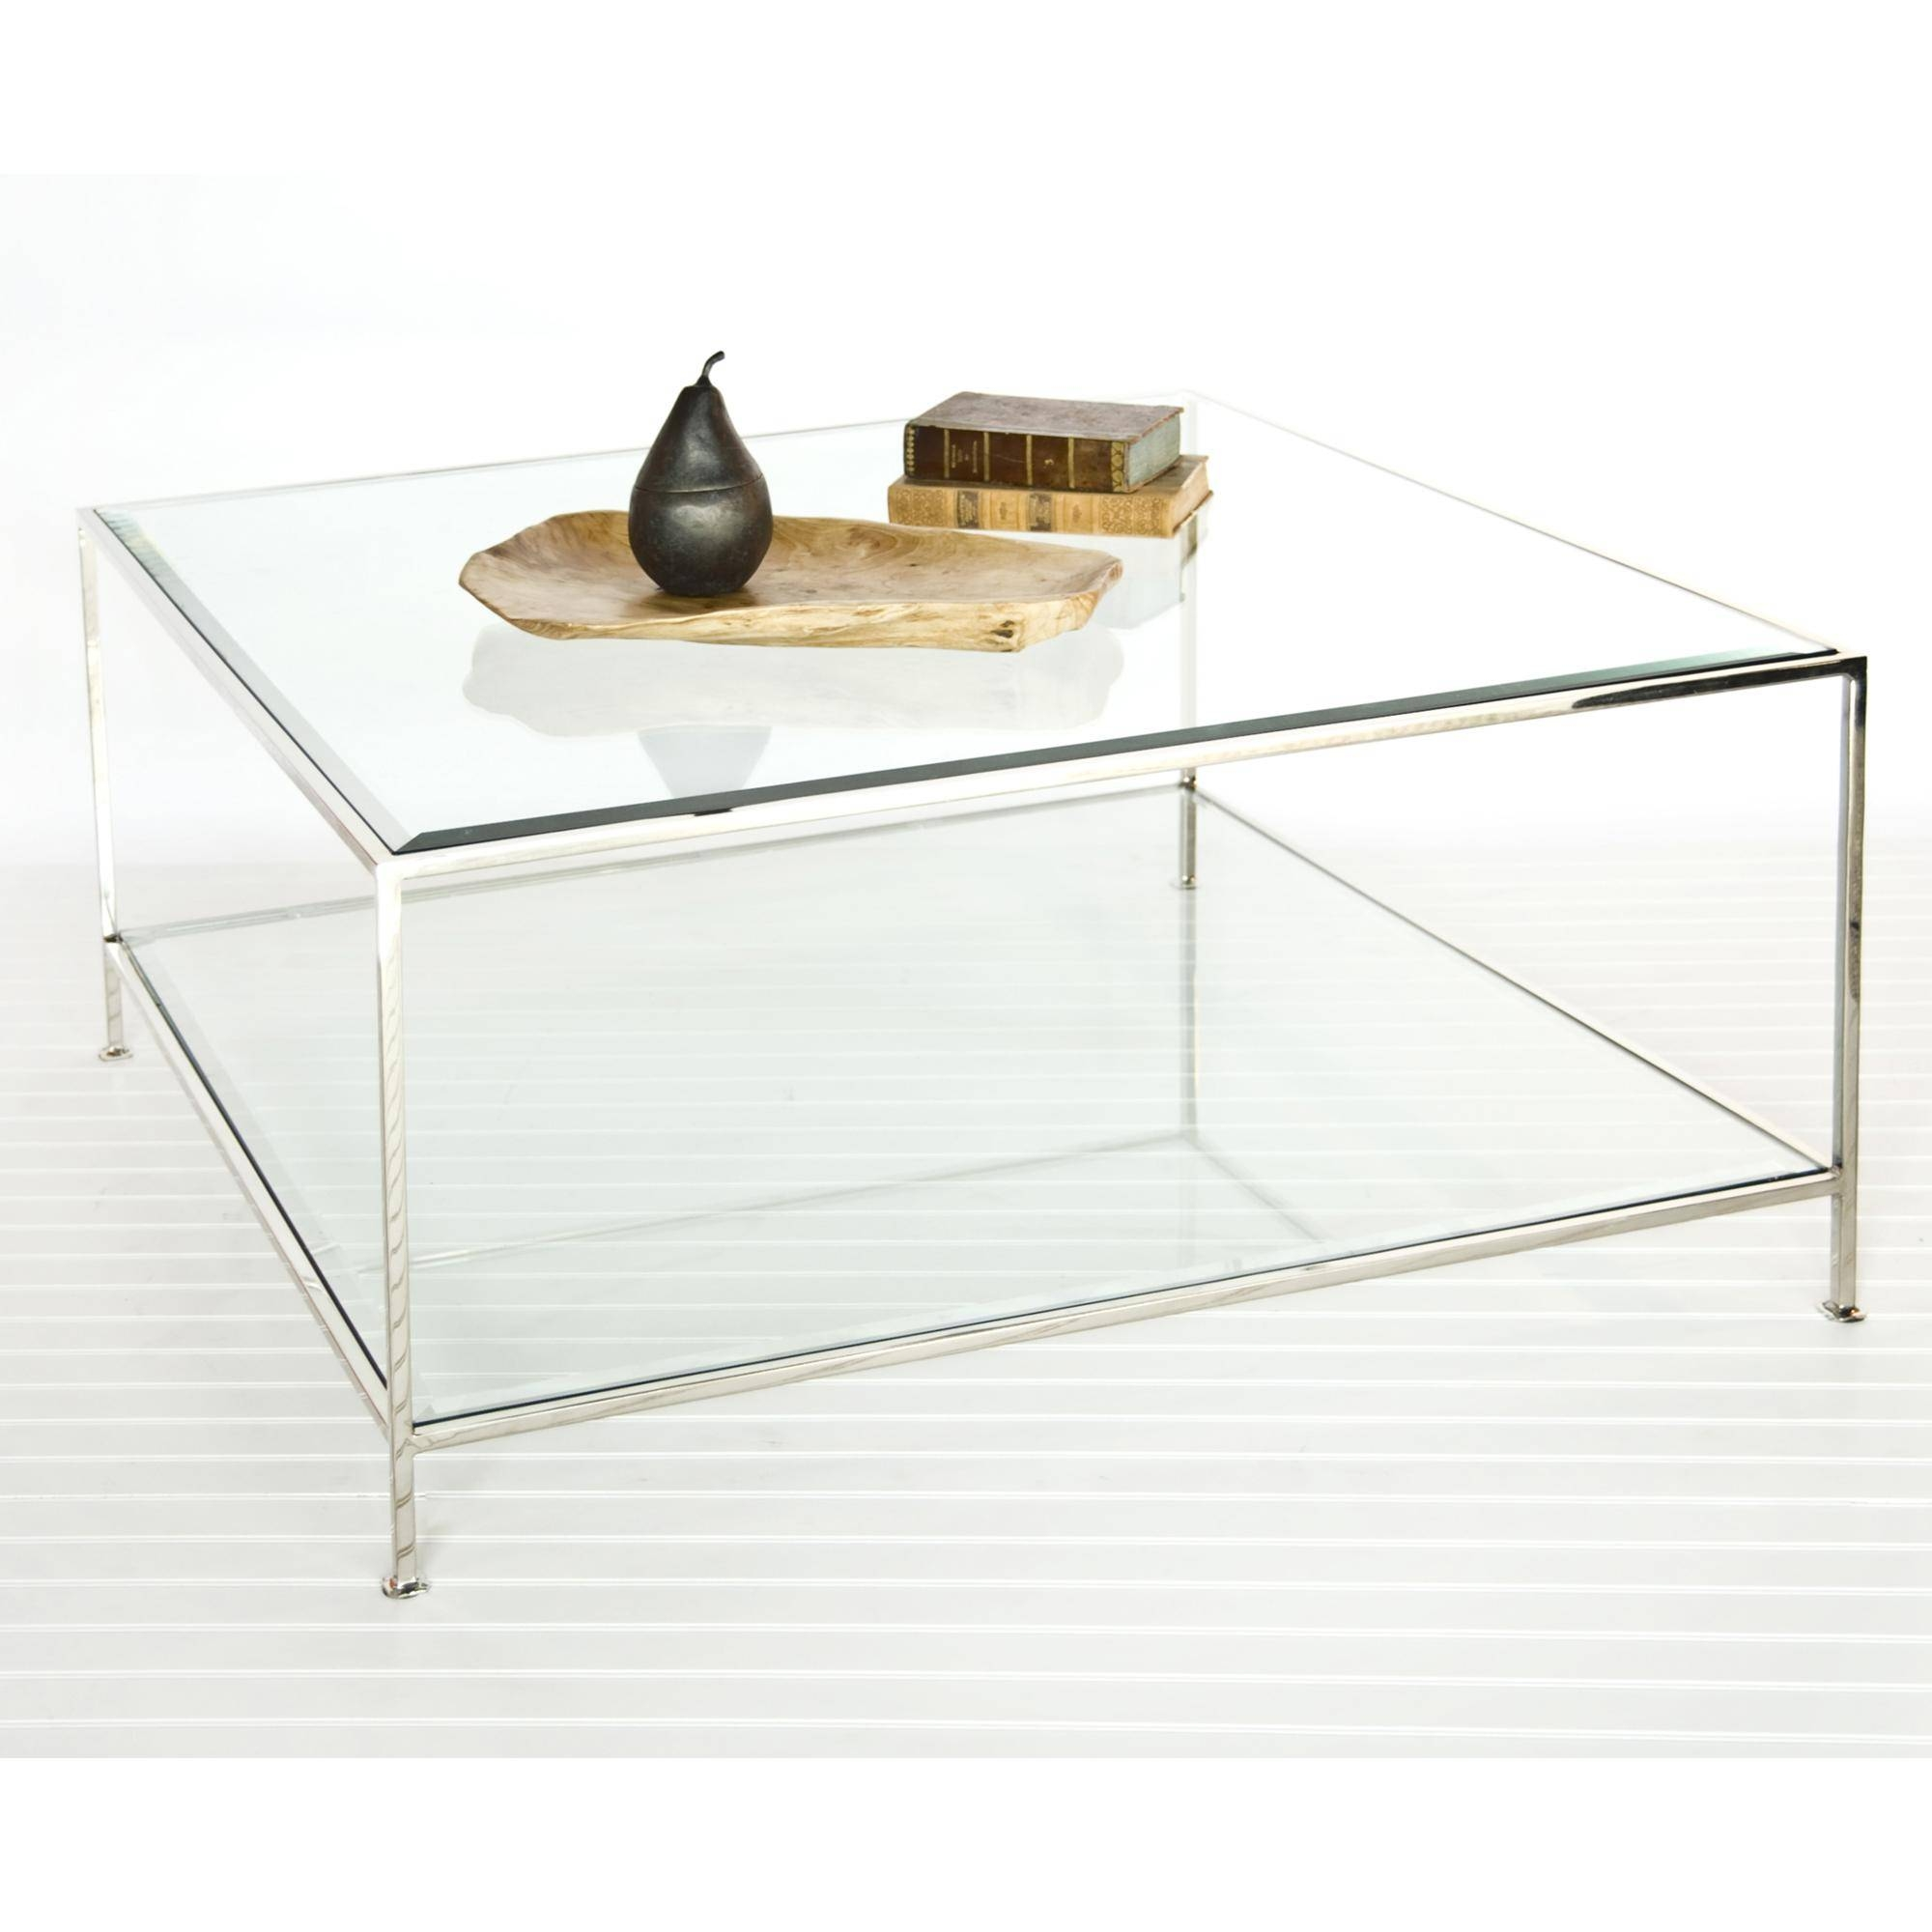 30 s All Glass Coffee Tables